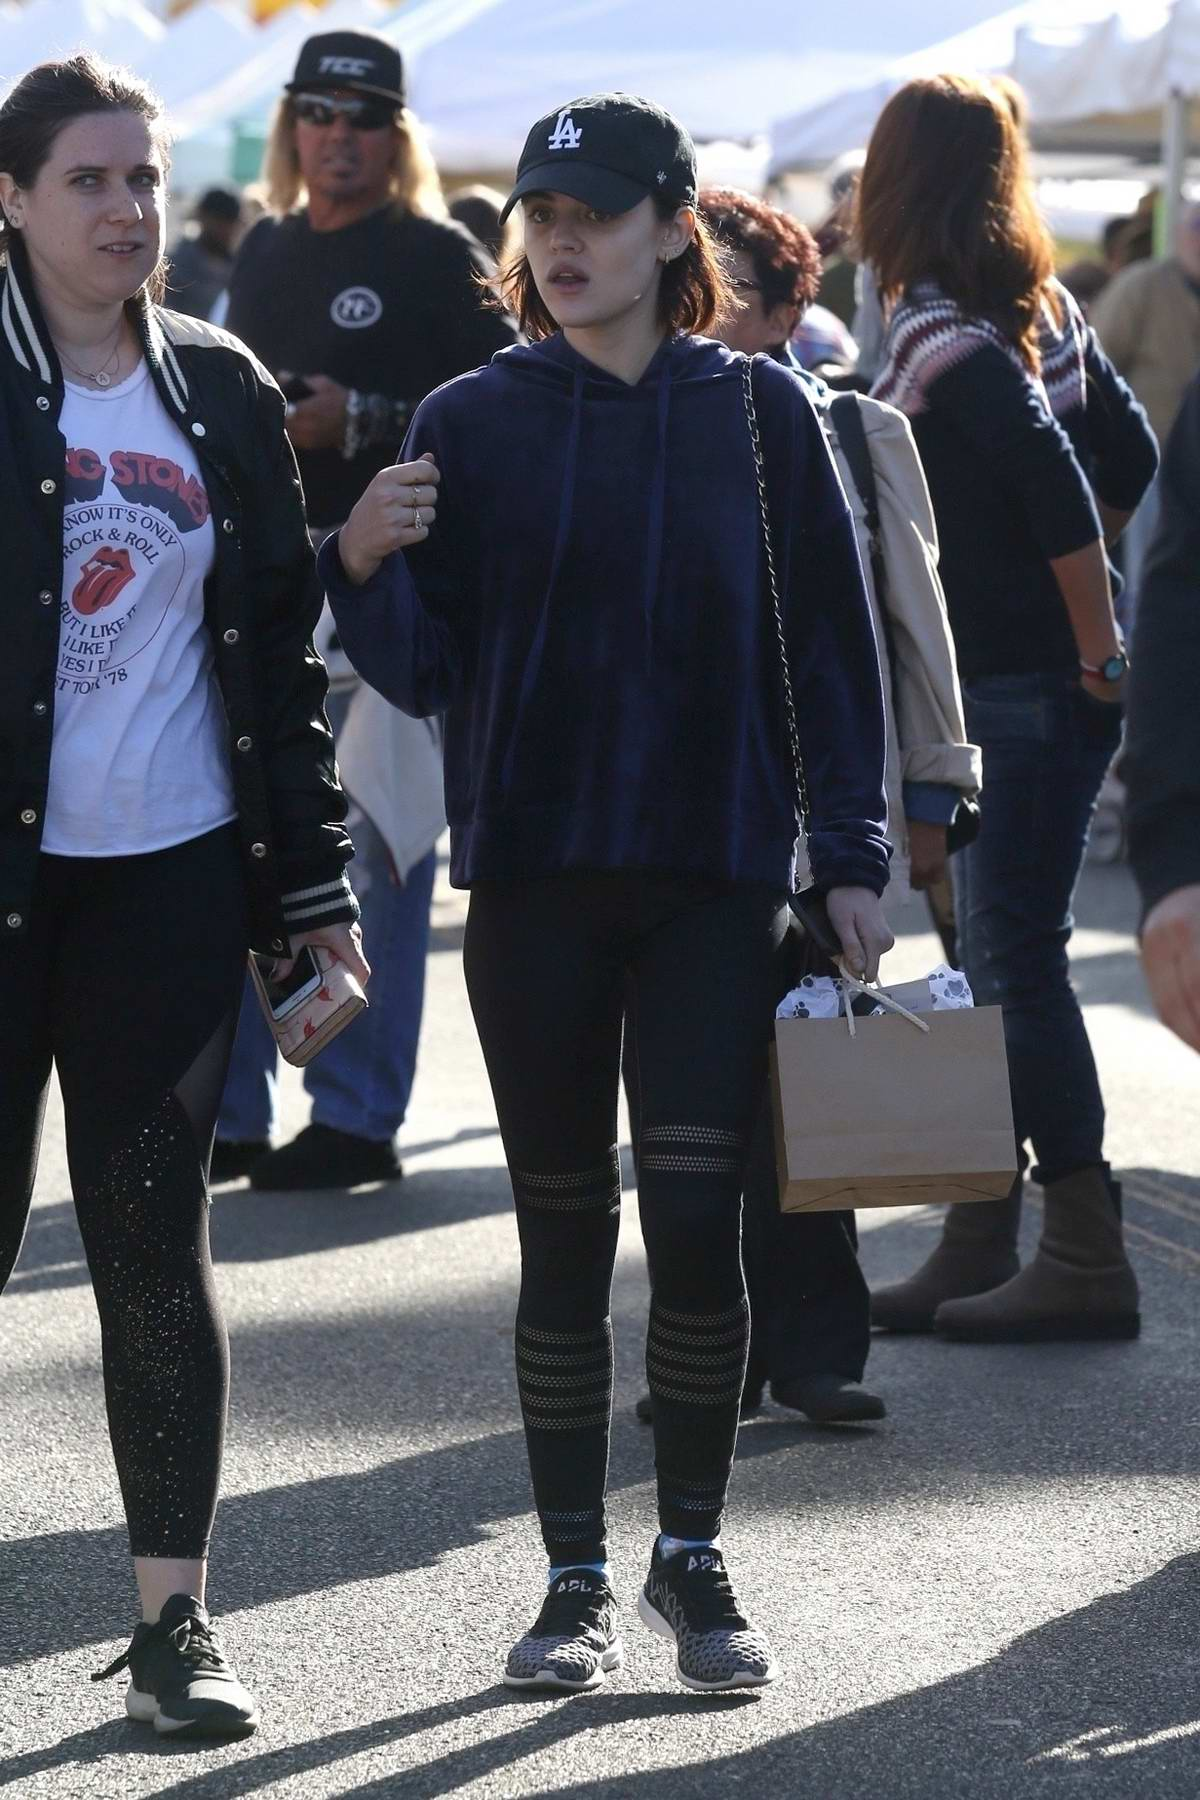 Lucy Hale sports a blue velvet hoodie while shopping at the farmer's market in Studio City, Los Angeles